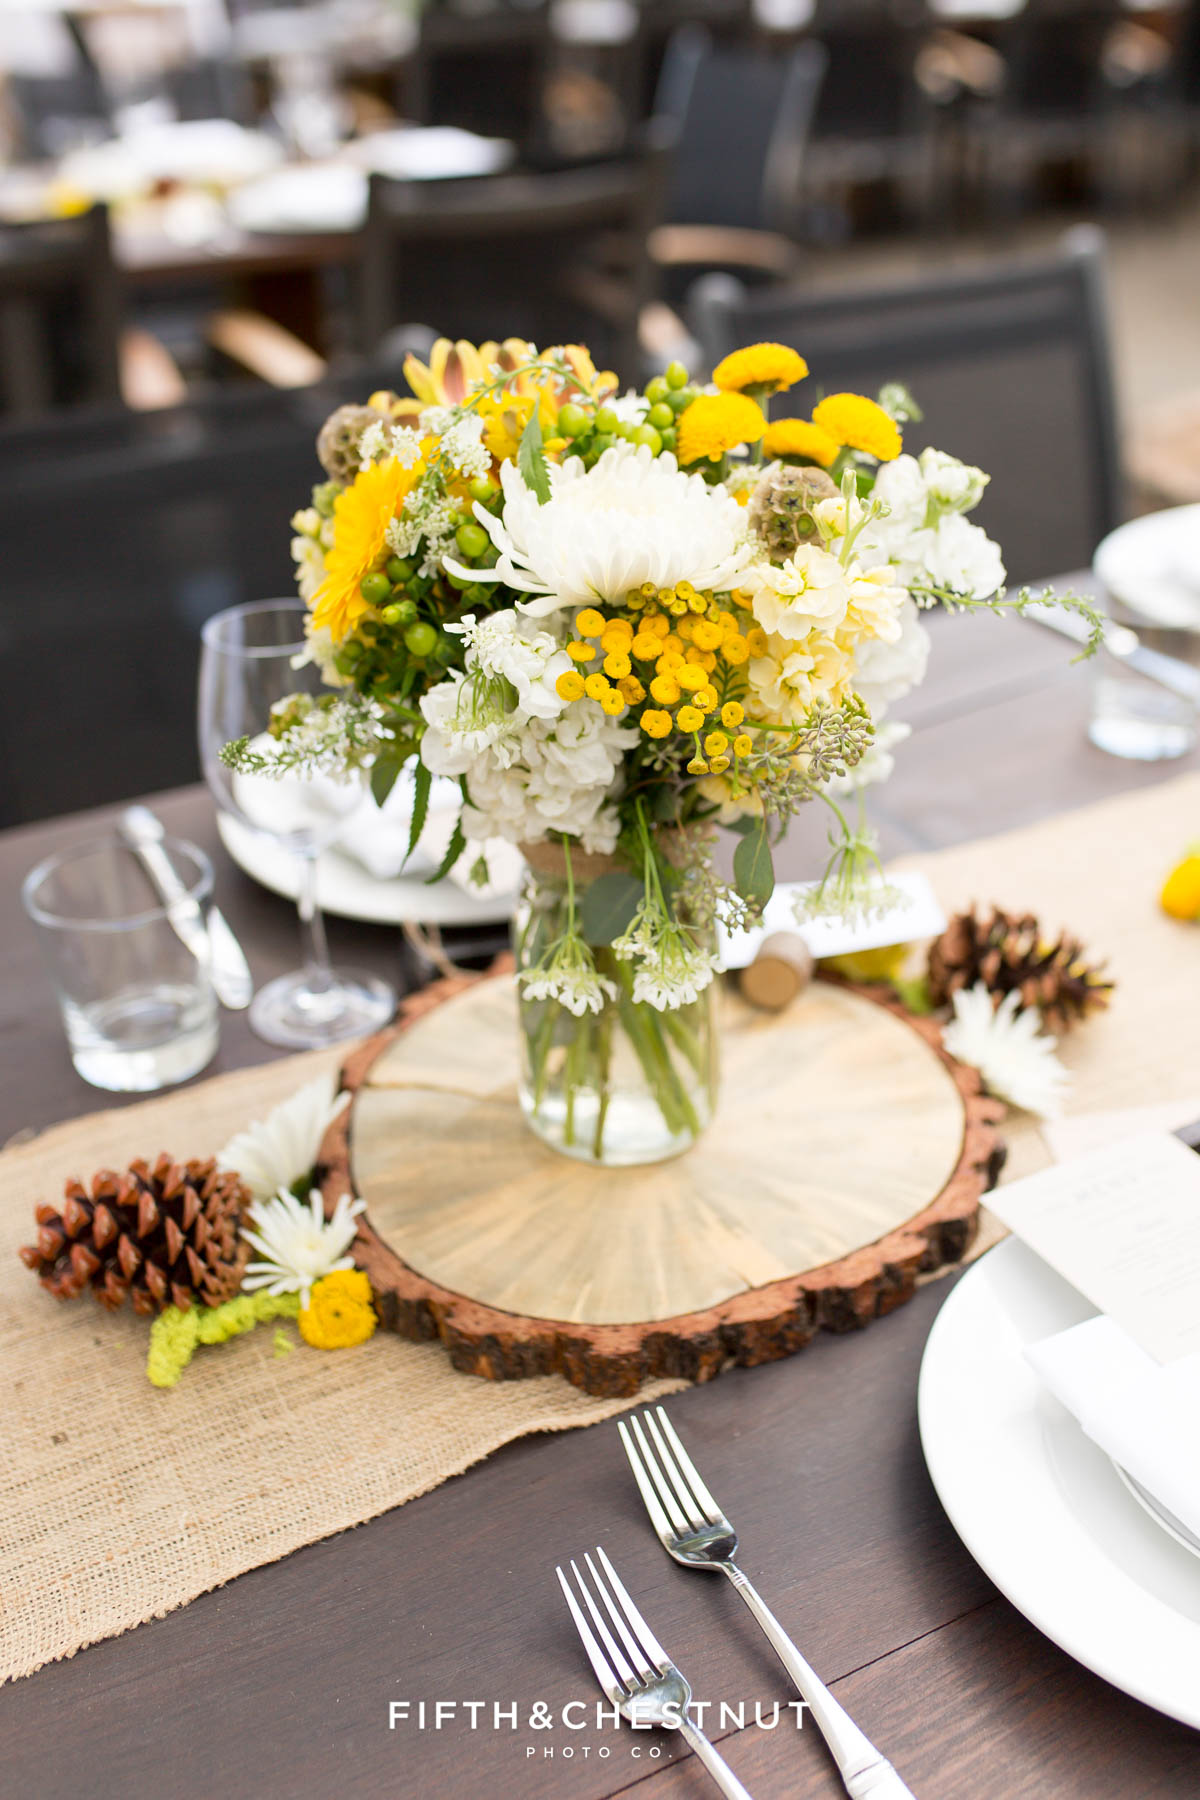 Vase full of white and yellow summer flowers for a PJ's at Gray's Crossing wedding